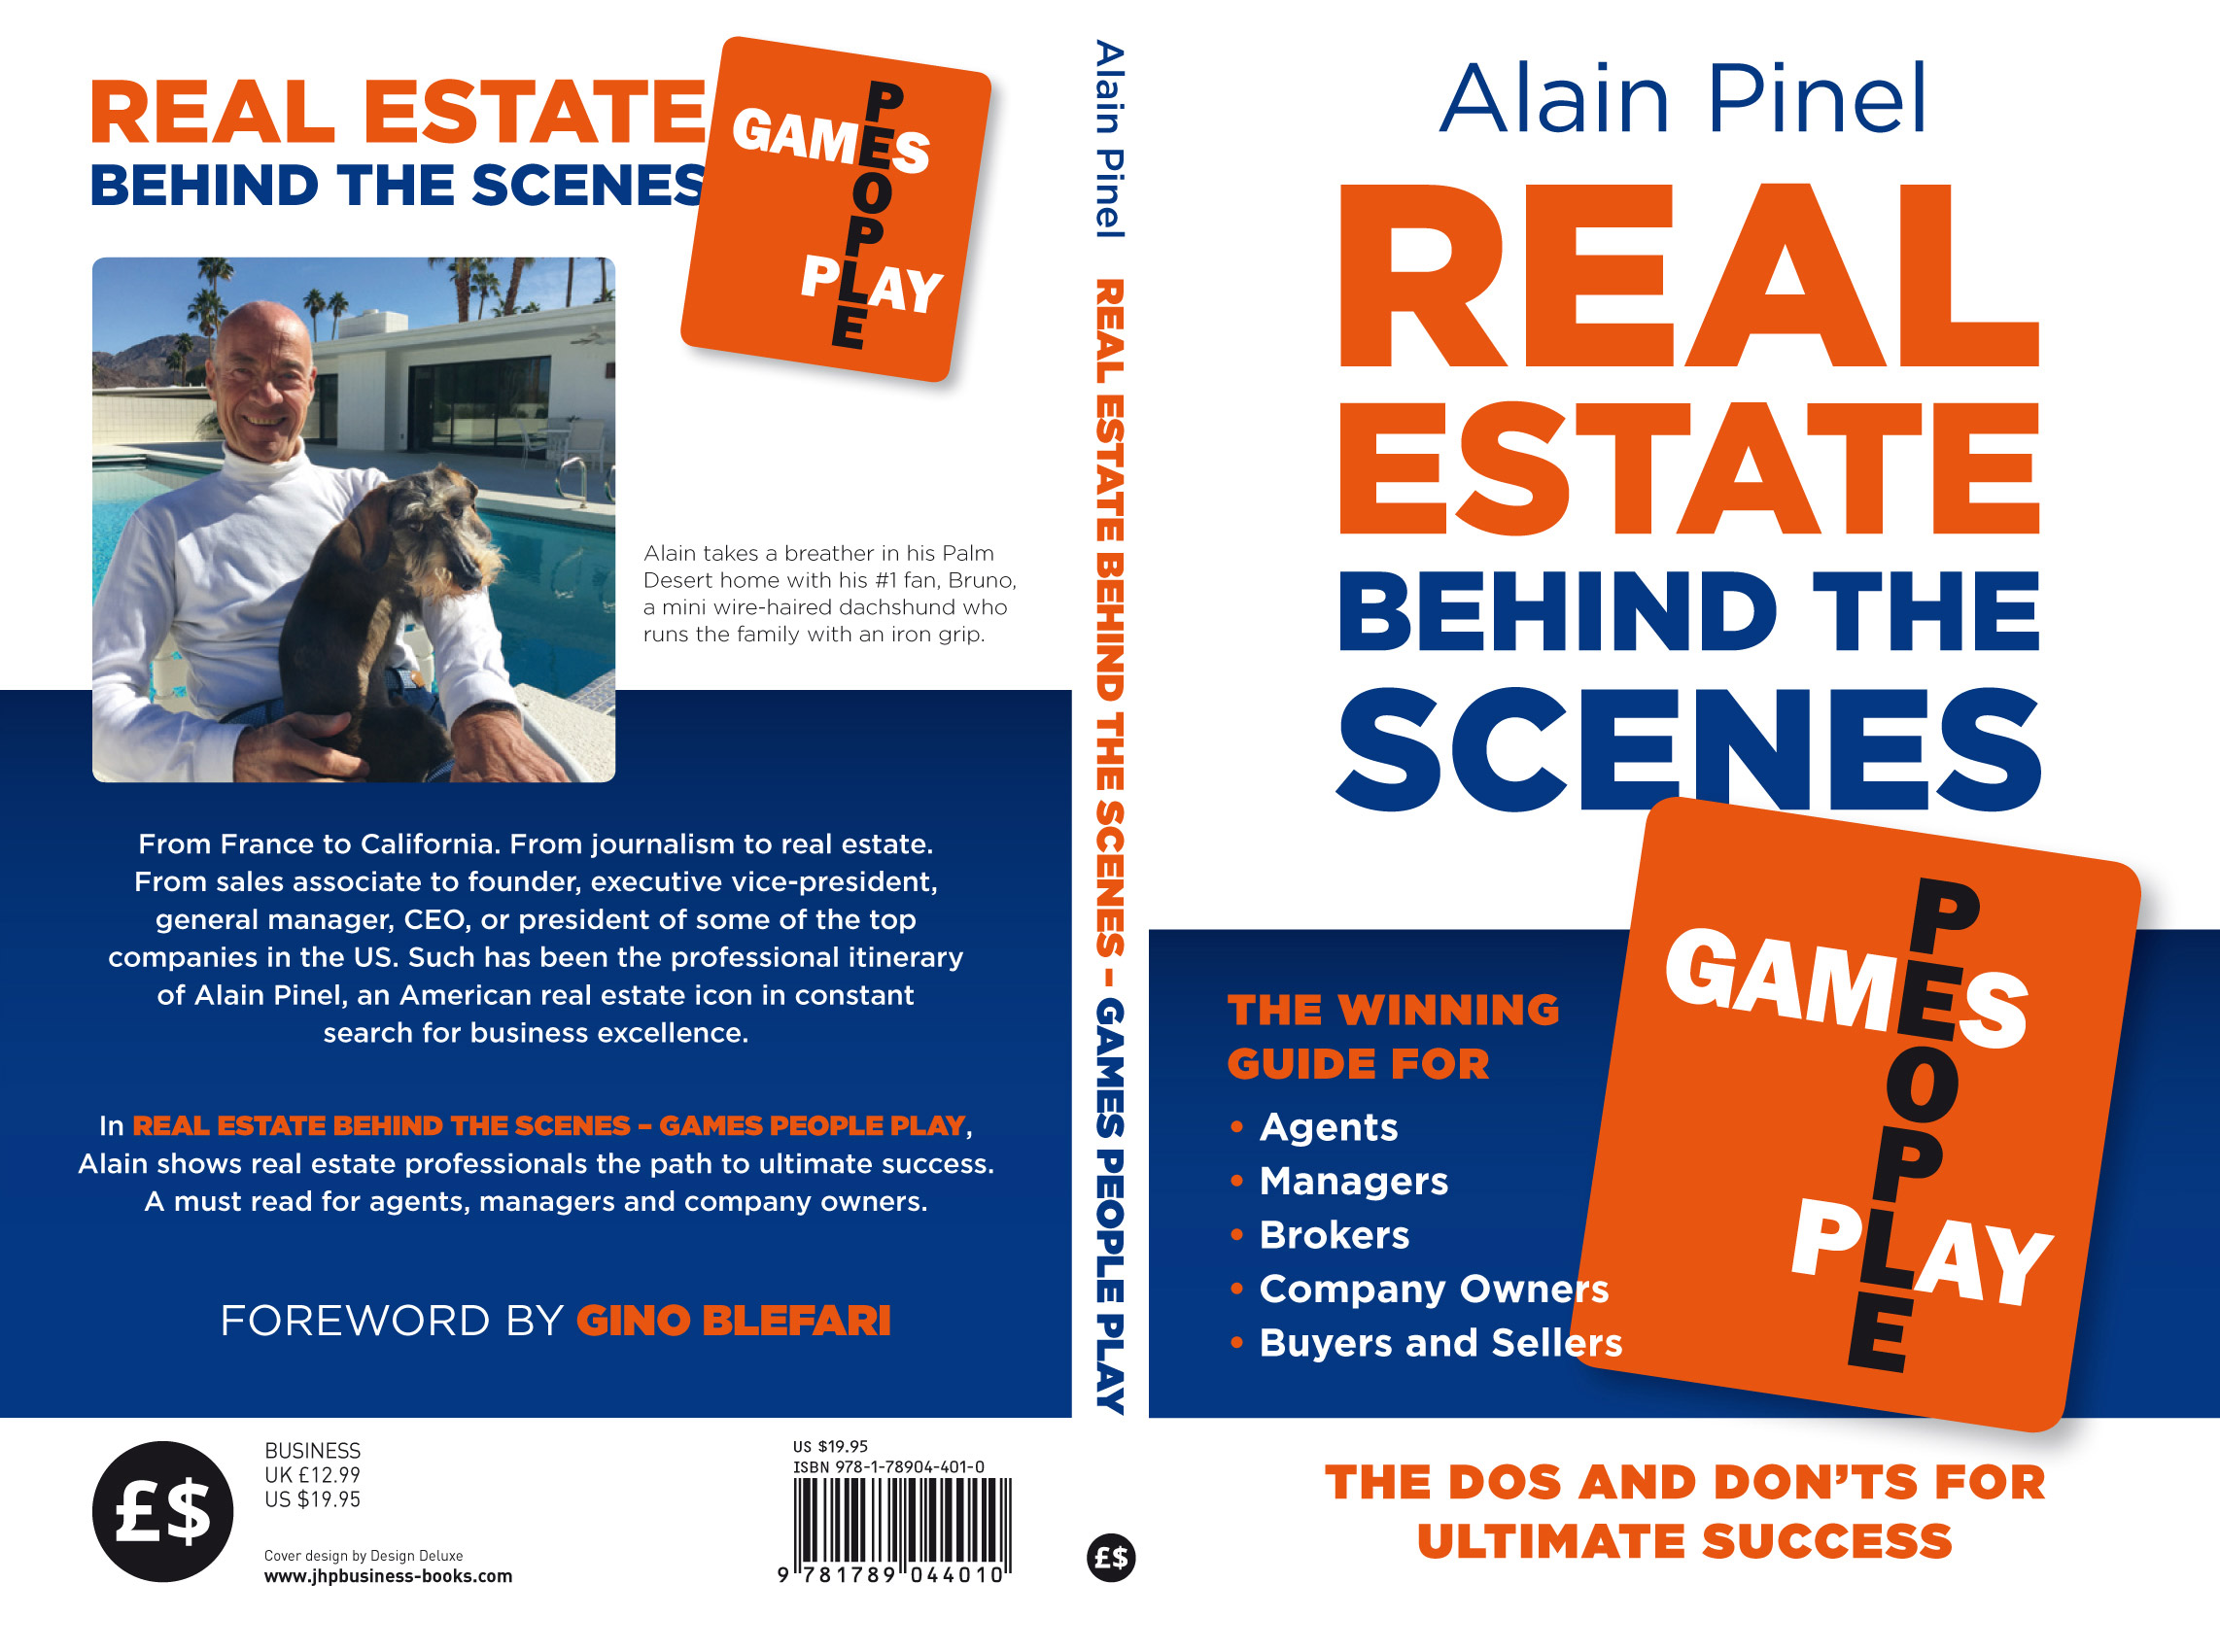 Real Estate Behind The Scenes - Games People Play